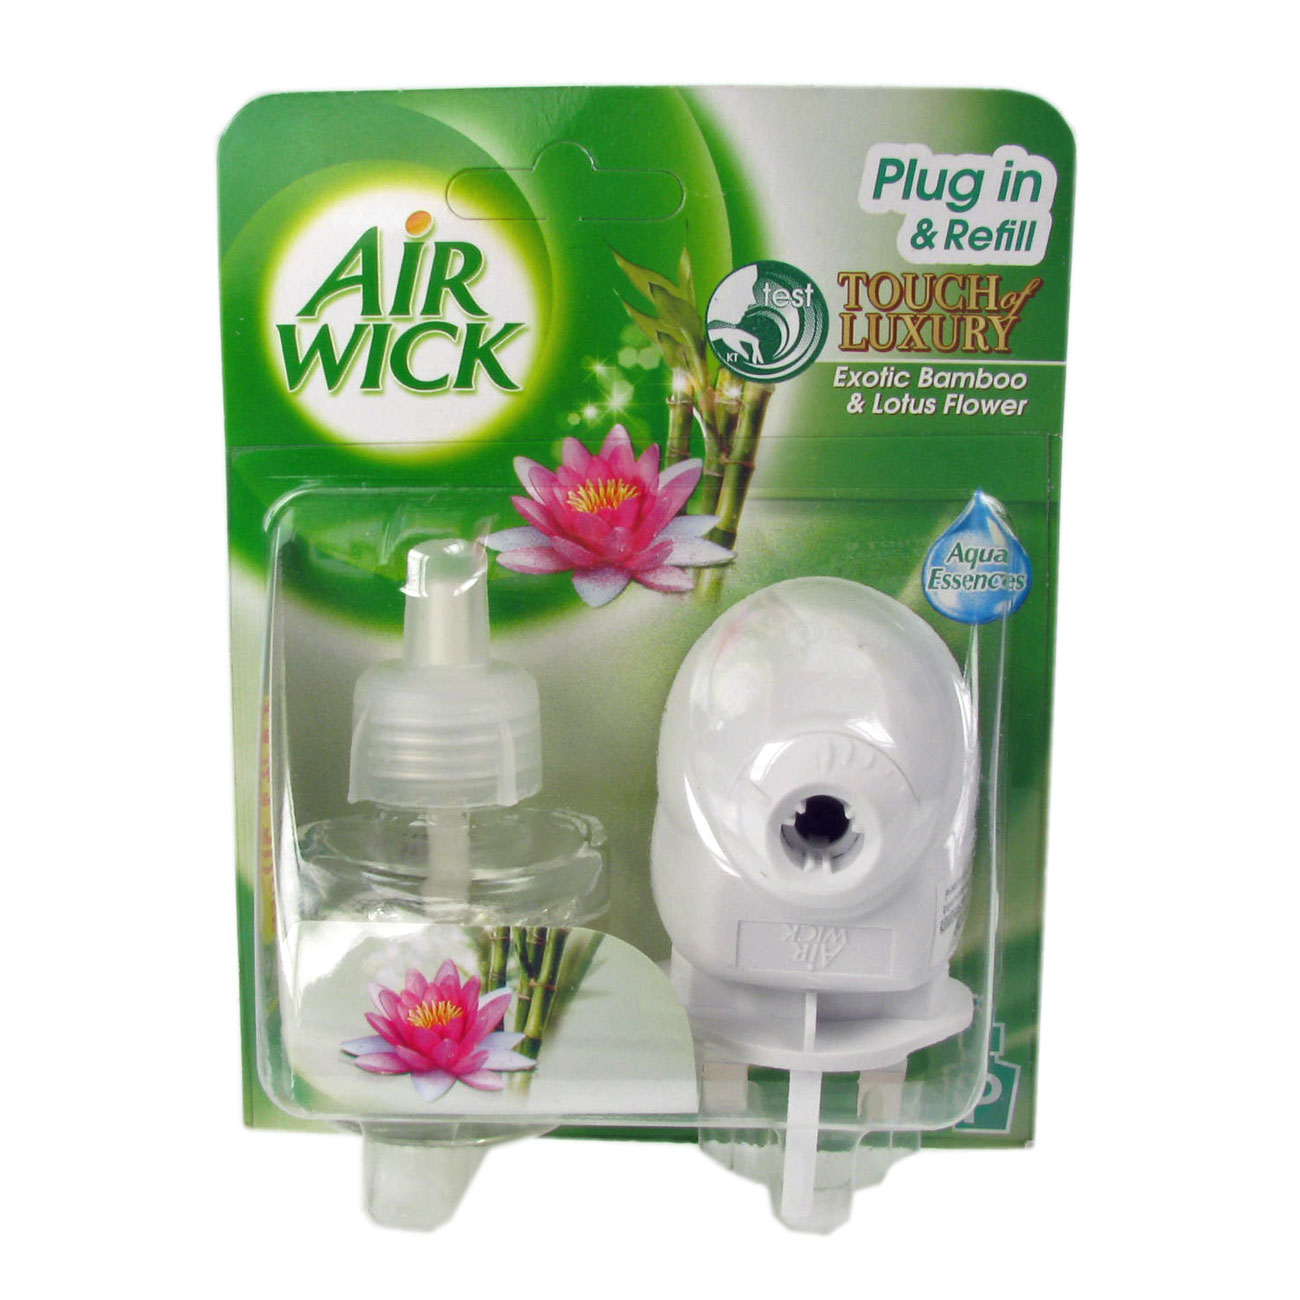 Air Wick Plug In & Refill Exotic Bamboo Lotus Flower Touch Of Luxury Enlarged Preview